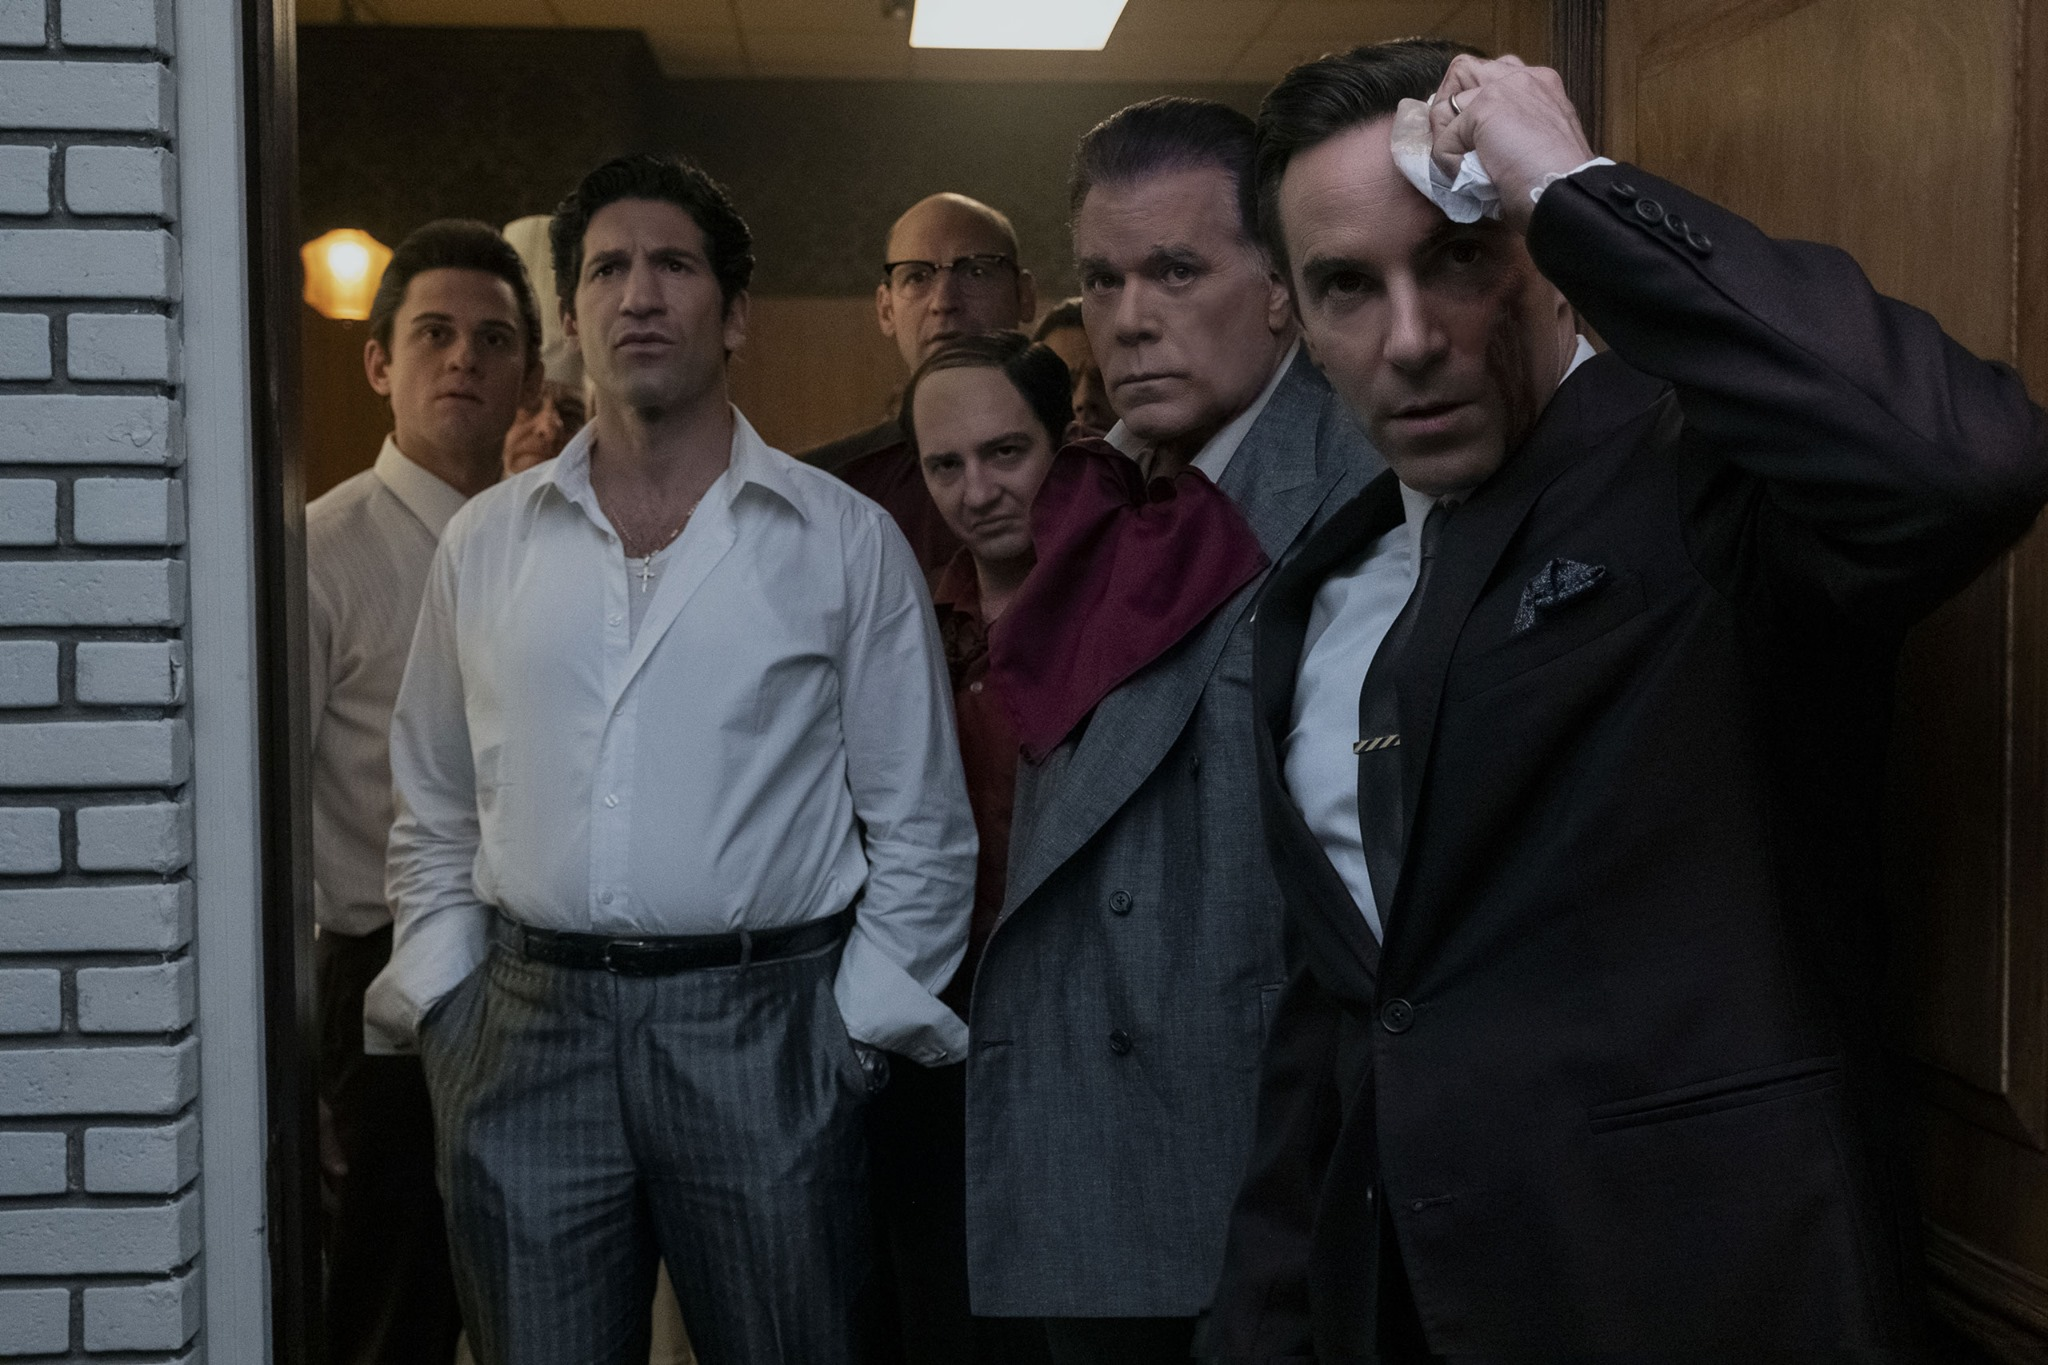 Billy Magnussen, Jon Bernthal, Corey Stoll, John Magaro, Ray Liotta, and Alessandro Nivola stand in a doorway looking out angrily in the movie The Many Saints of Newark